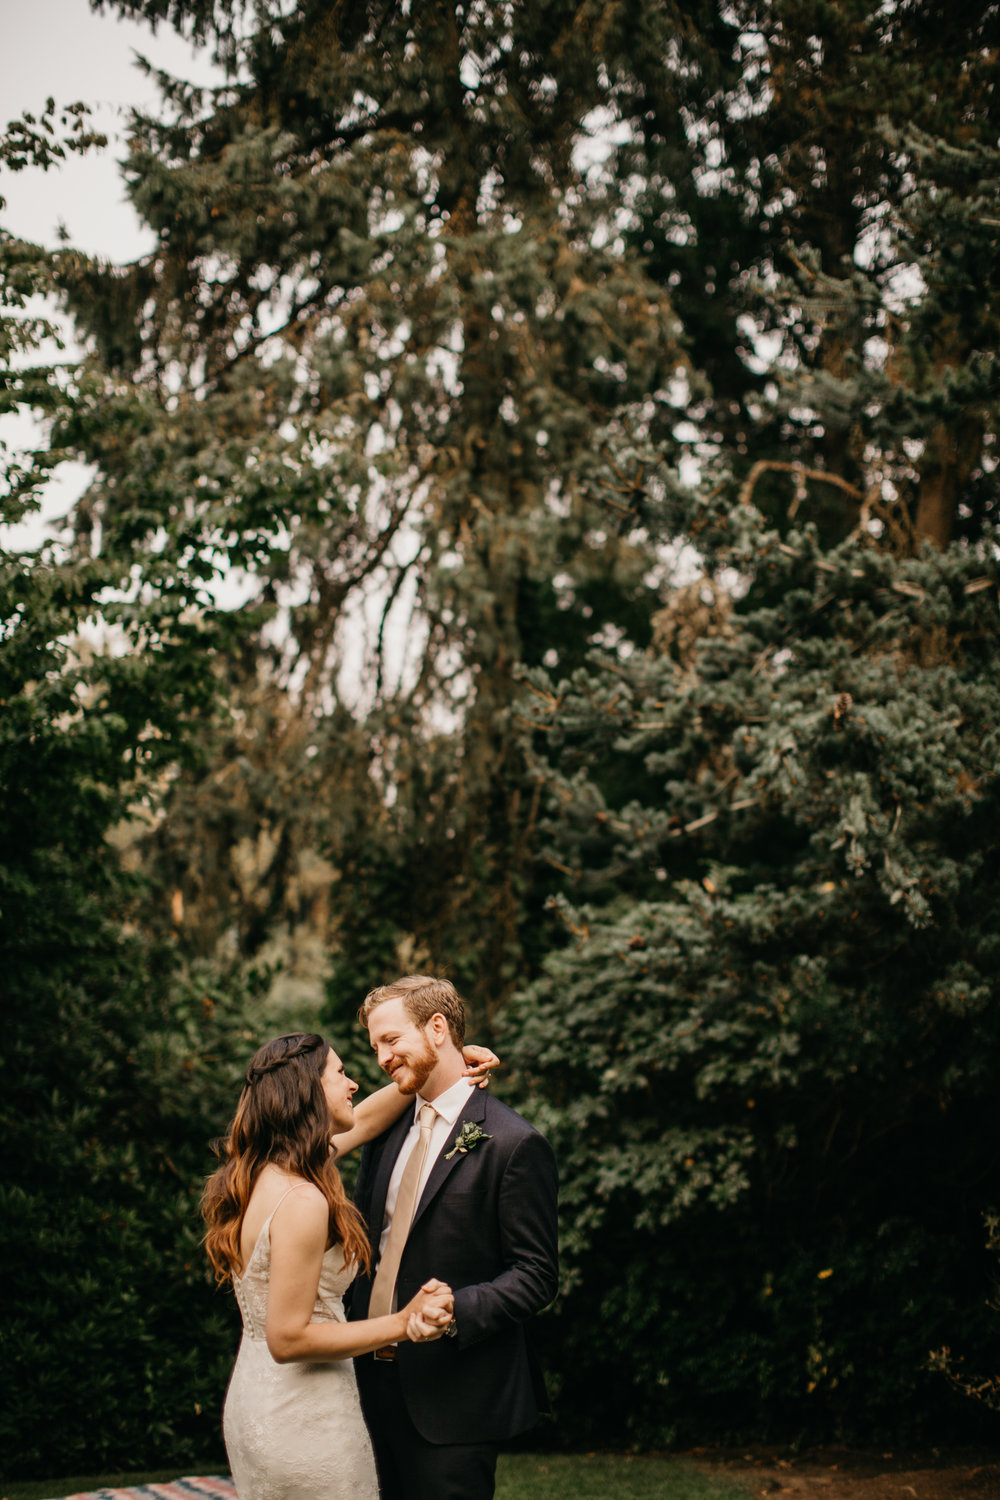 Max&SamPhoto_Seattle Wedding Photographer_Bellevue Robinswood House_041.jpg